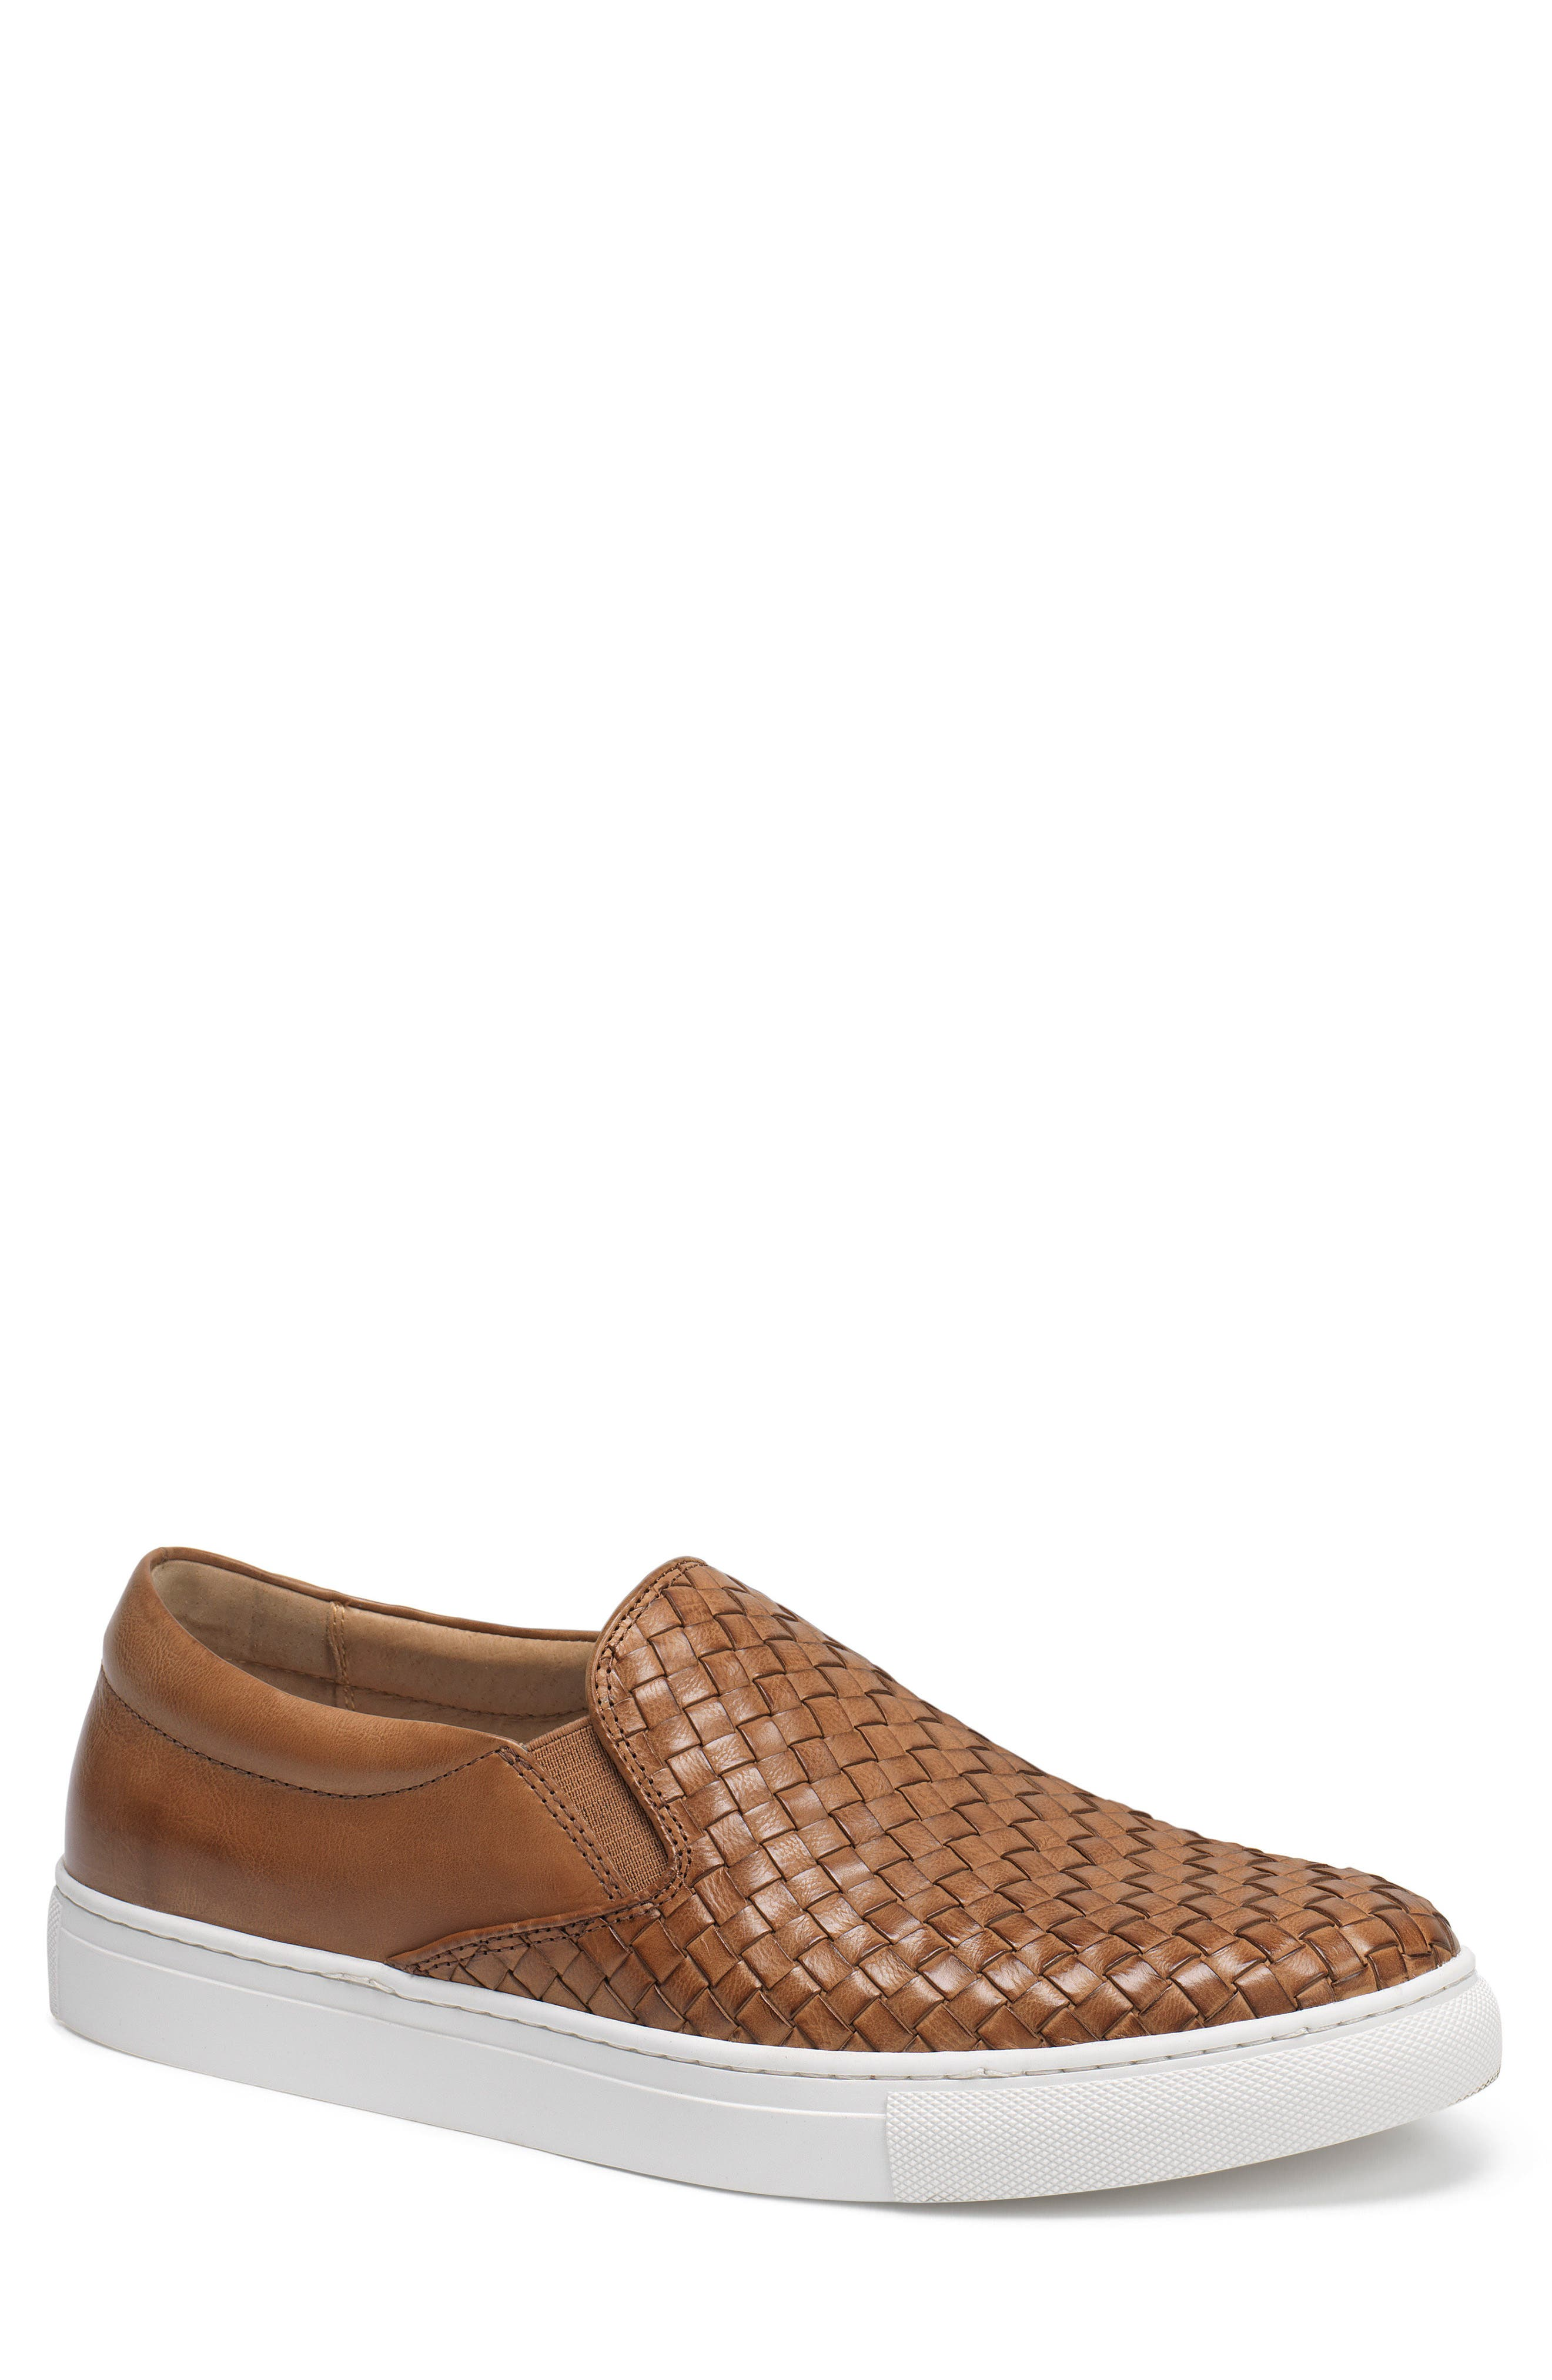 Alex Woven Slip-On Sneaker,                         Main,                         color, Tan Leather